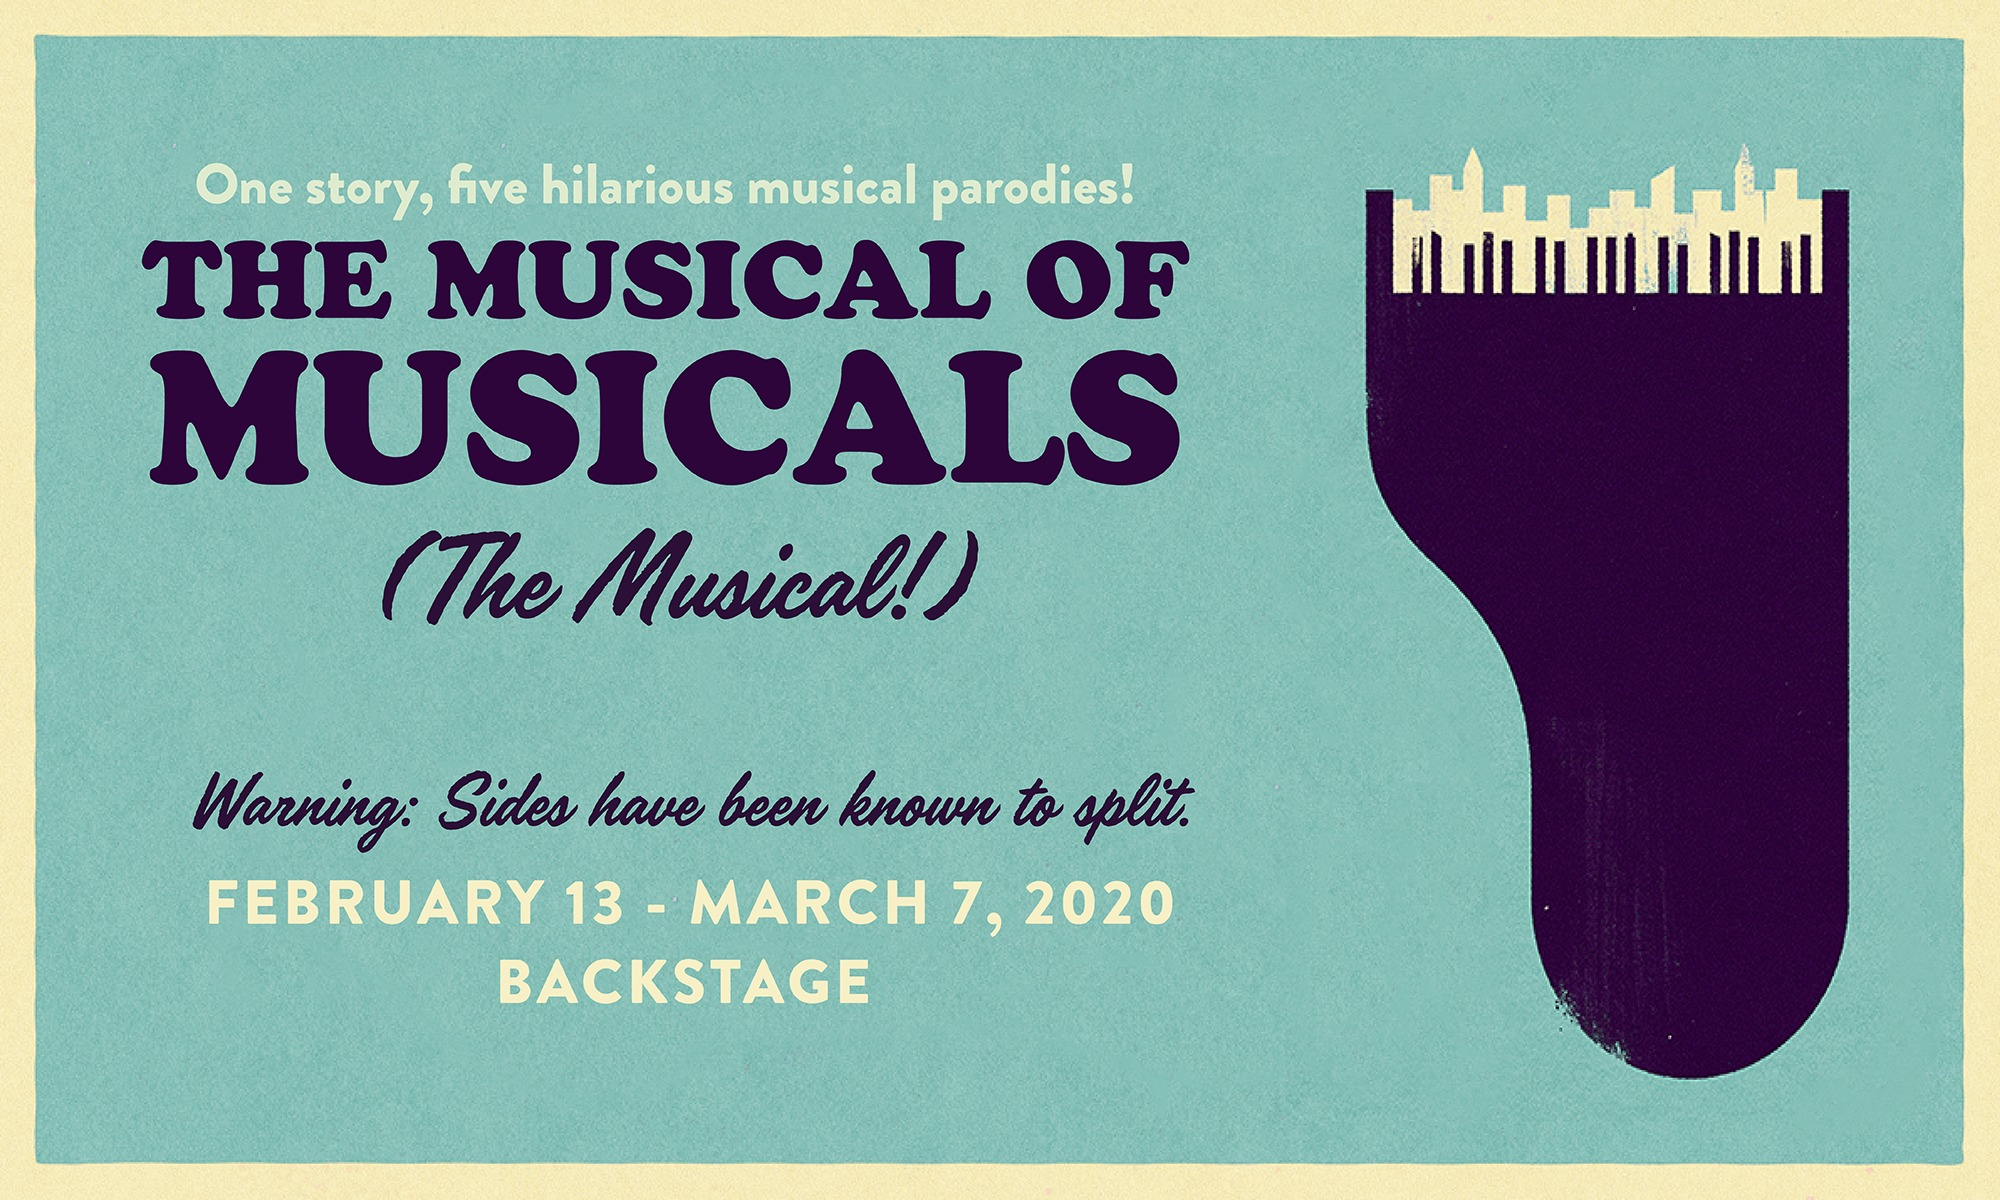 The Musical of Musicals (The Musical!) web graphic